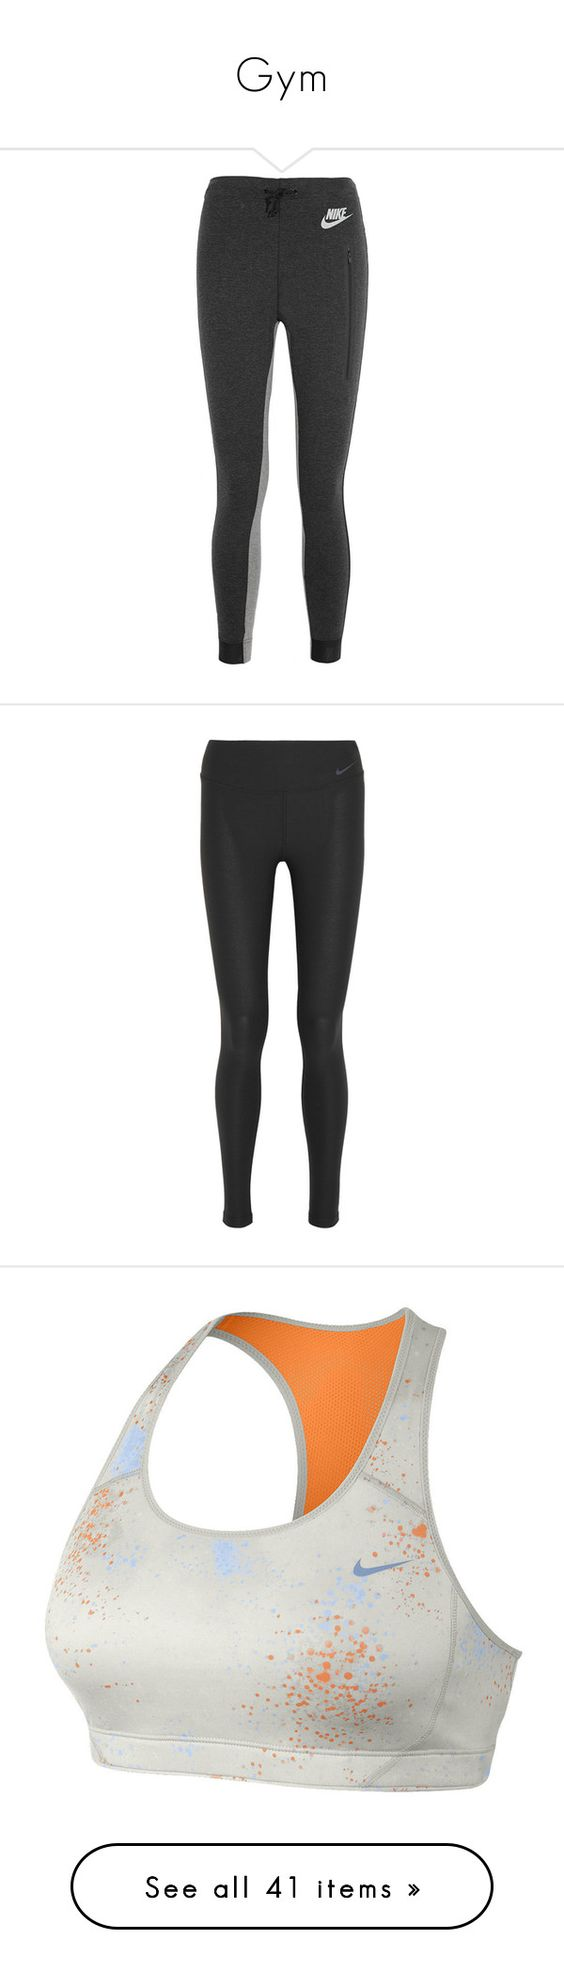 """Gym"" by anaritaferreira ❤ liked on Polyvore featuring activewear, activewear pants, pants, sport, athletic, jeans, track pants, nike activewear, nike sportswear and athletic track pants"